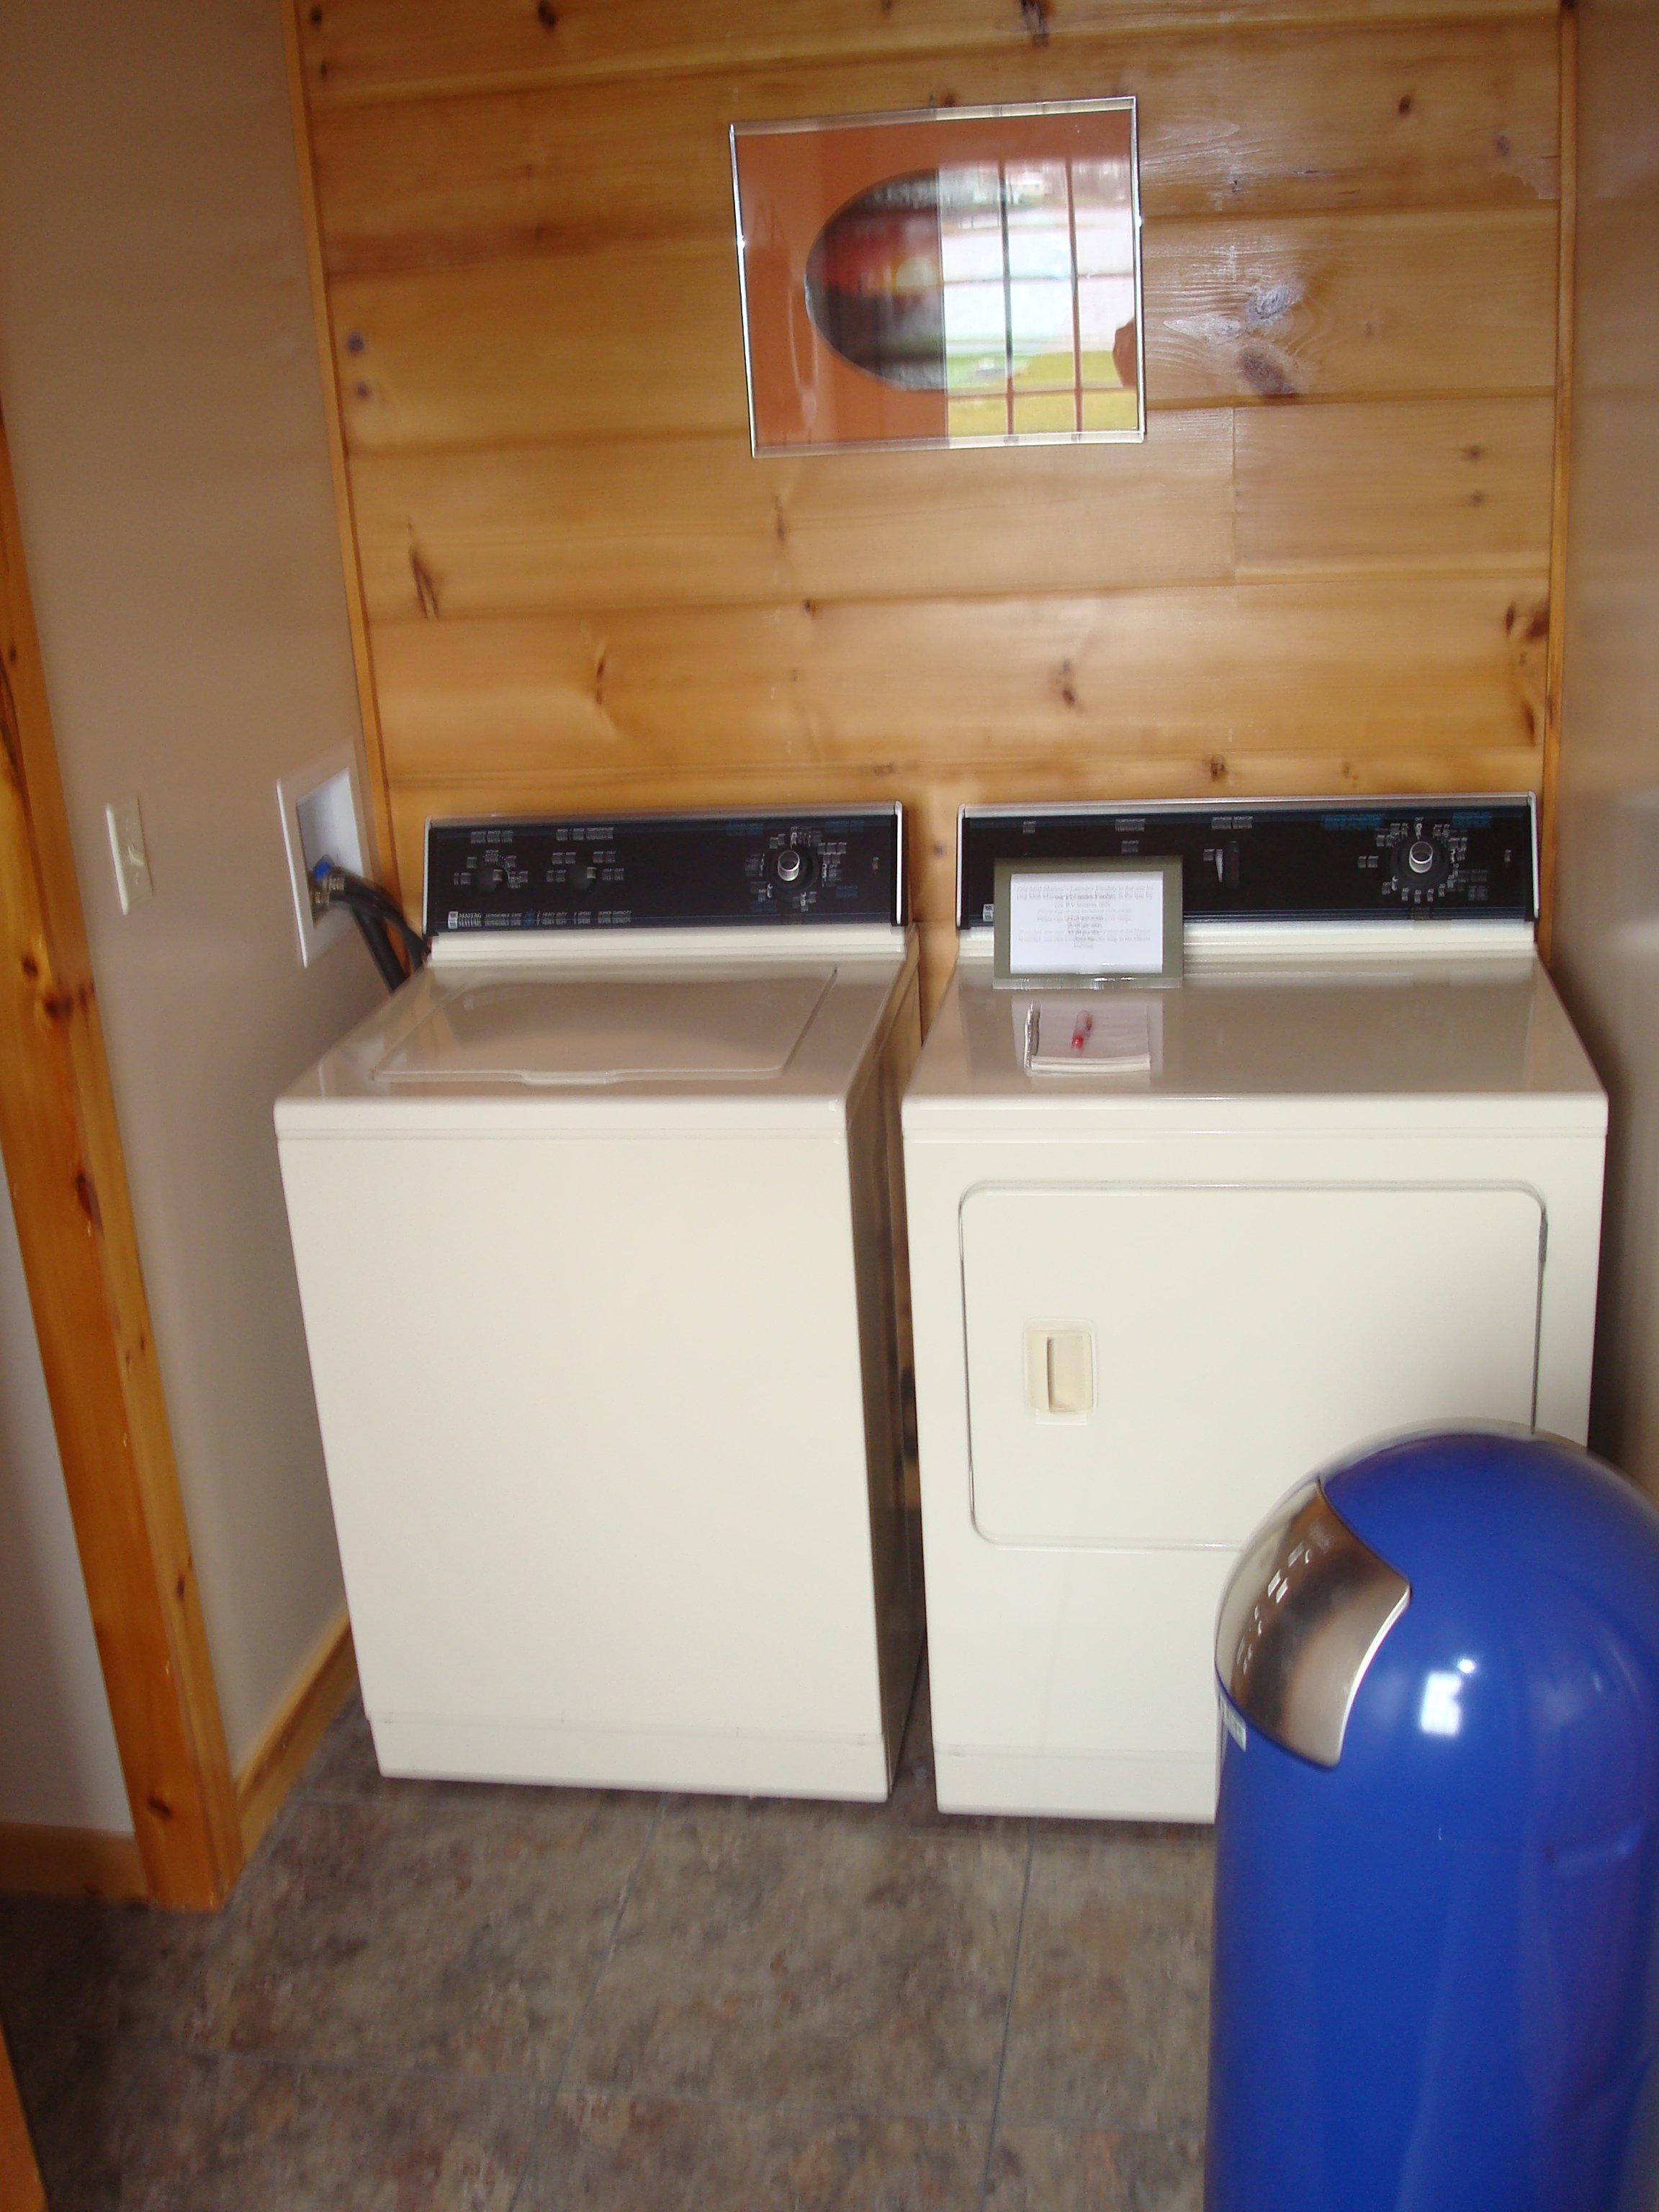 Service building with bathroom, showers, and washer and dryer.